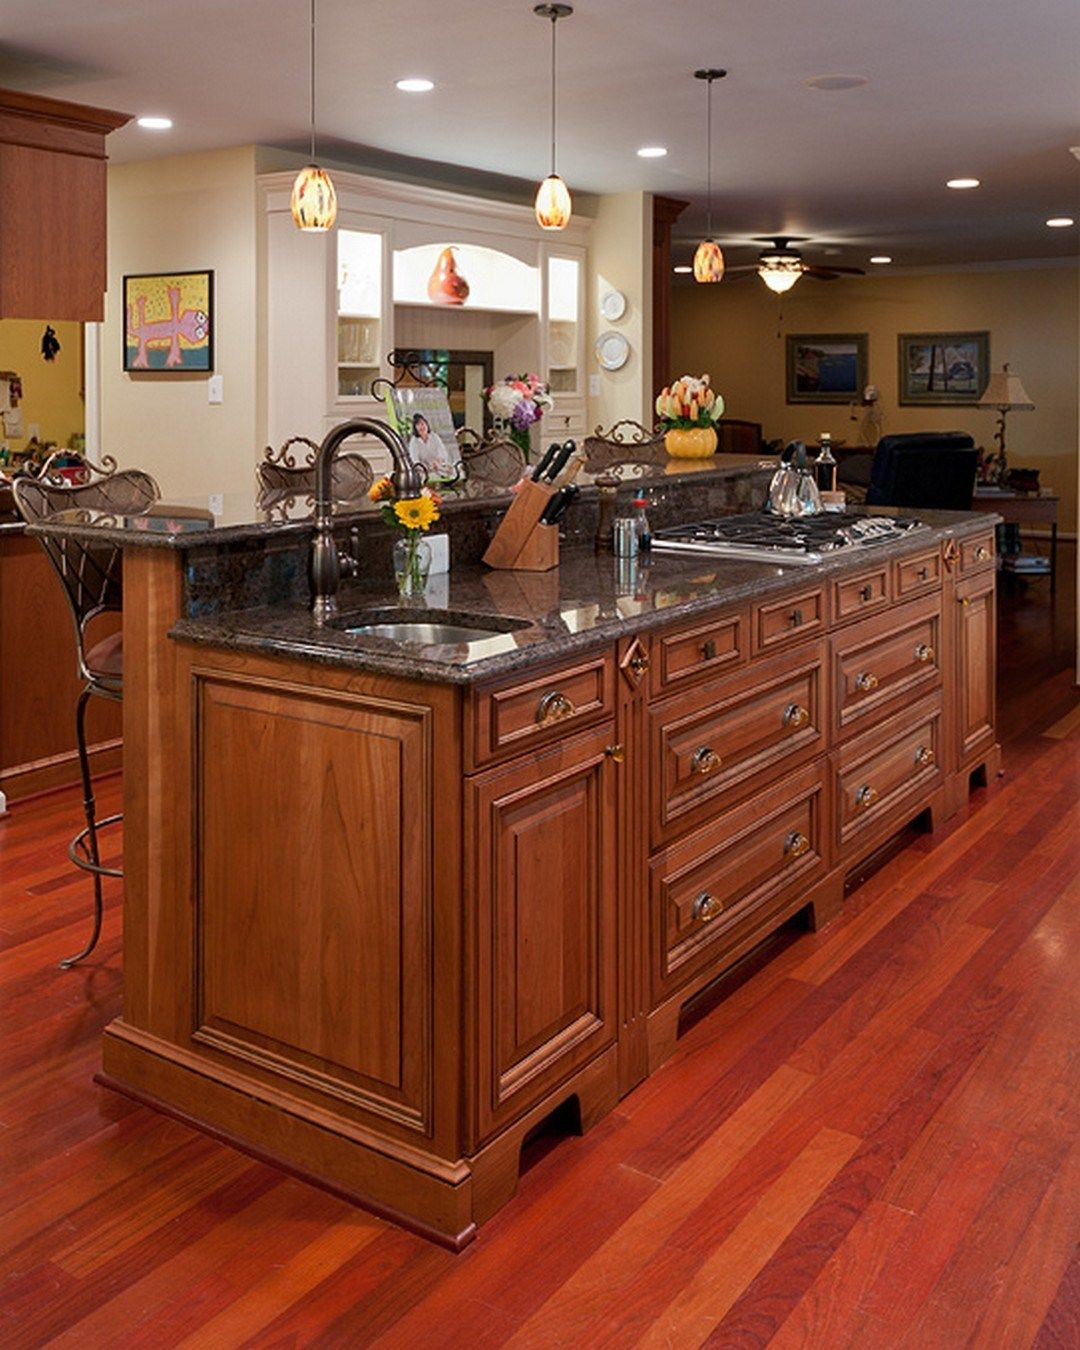 Creative Kitchen Islands With Stove Top Makeover Ideas 14 Kitchen Island With Stove Island With Stove Kitchen Island With Cooktop